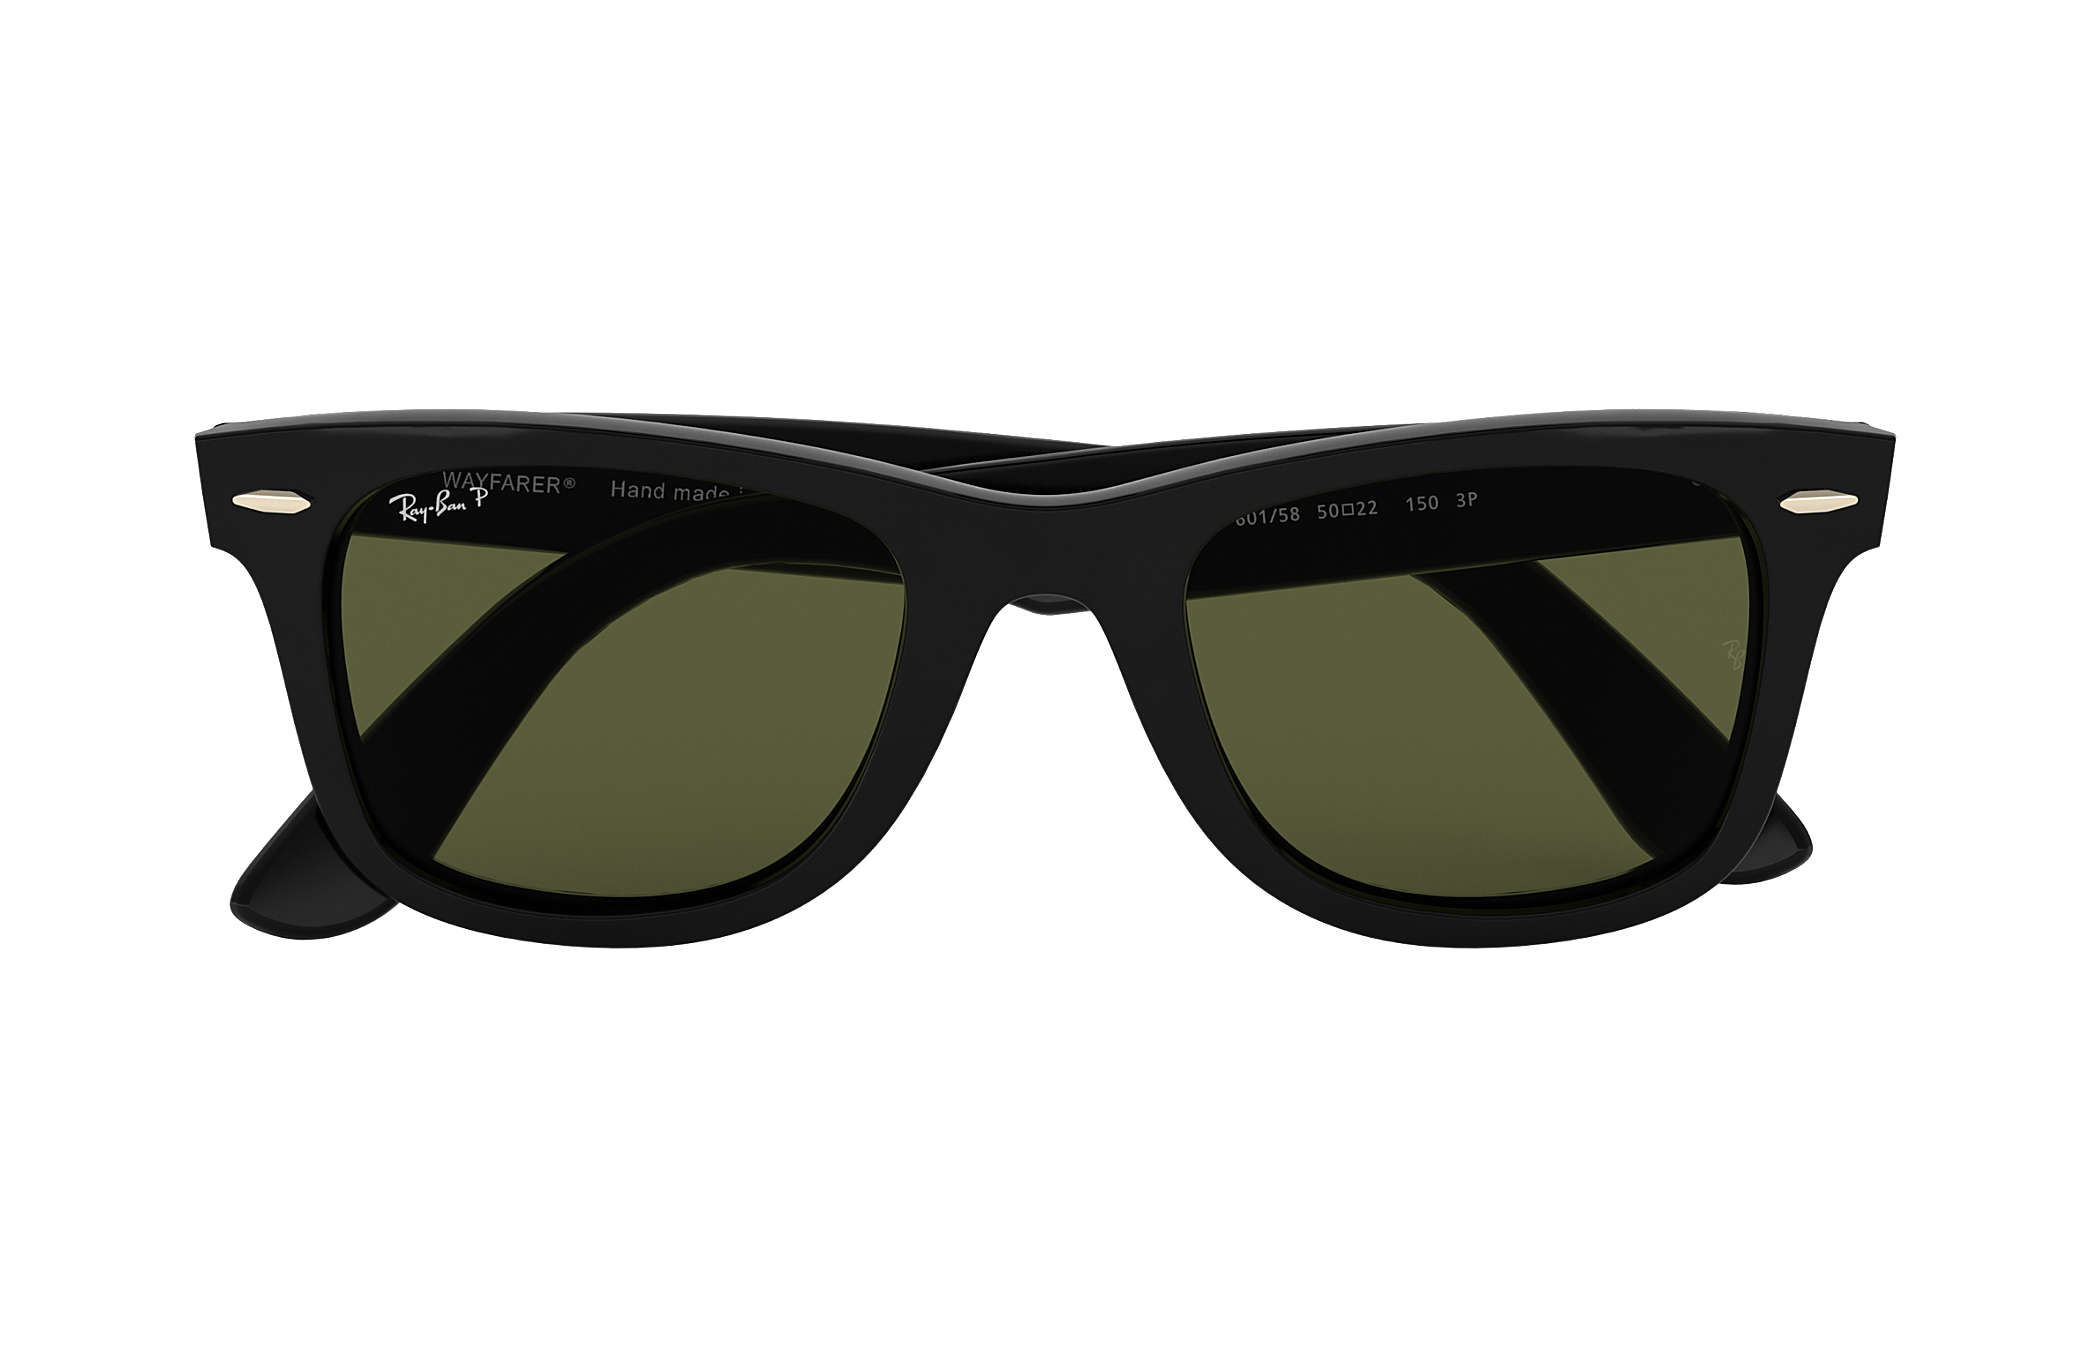 7a94d1ee127 Ray-Ban Wayfarer Ease RB4340 Black - Injected - Green Polarized ...